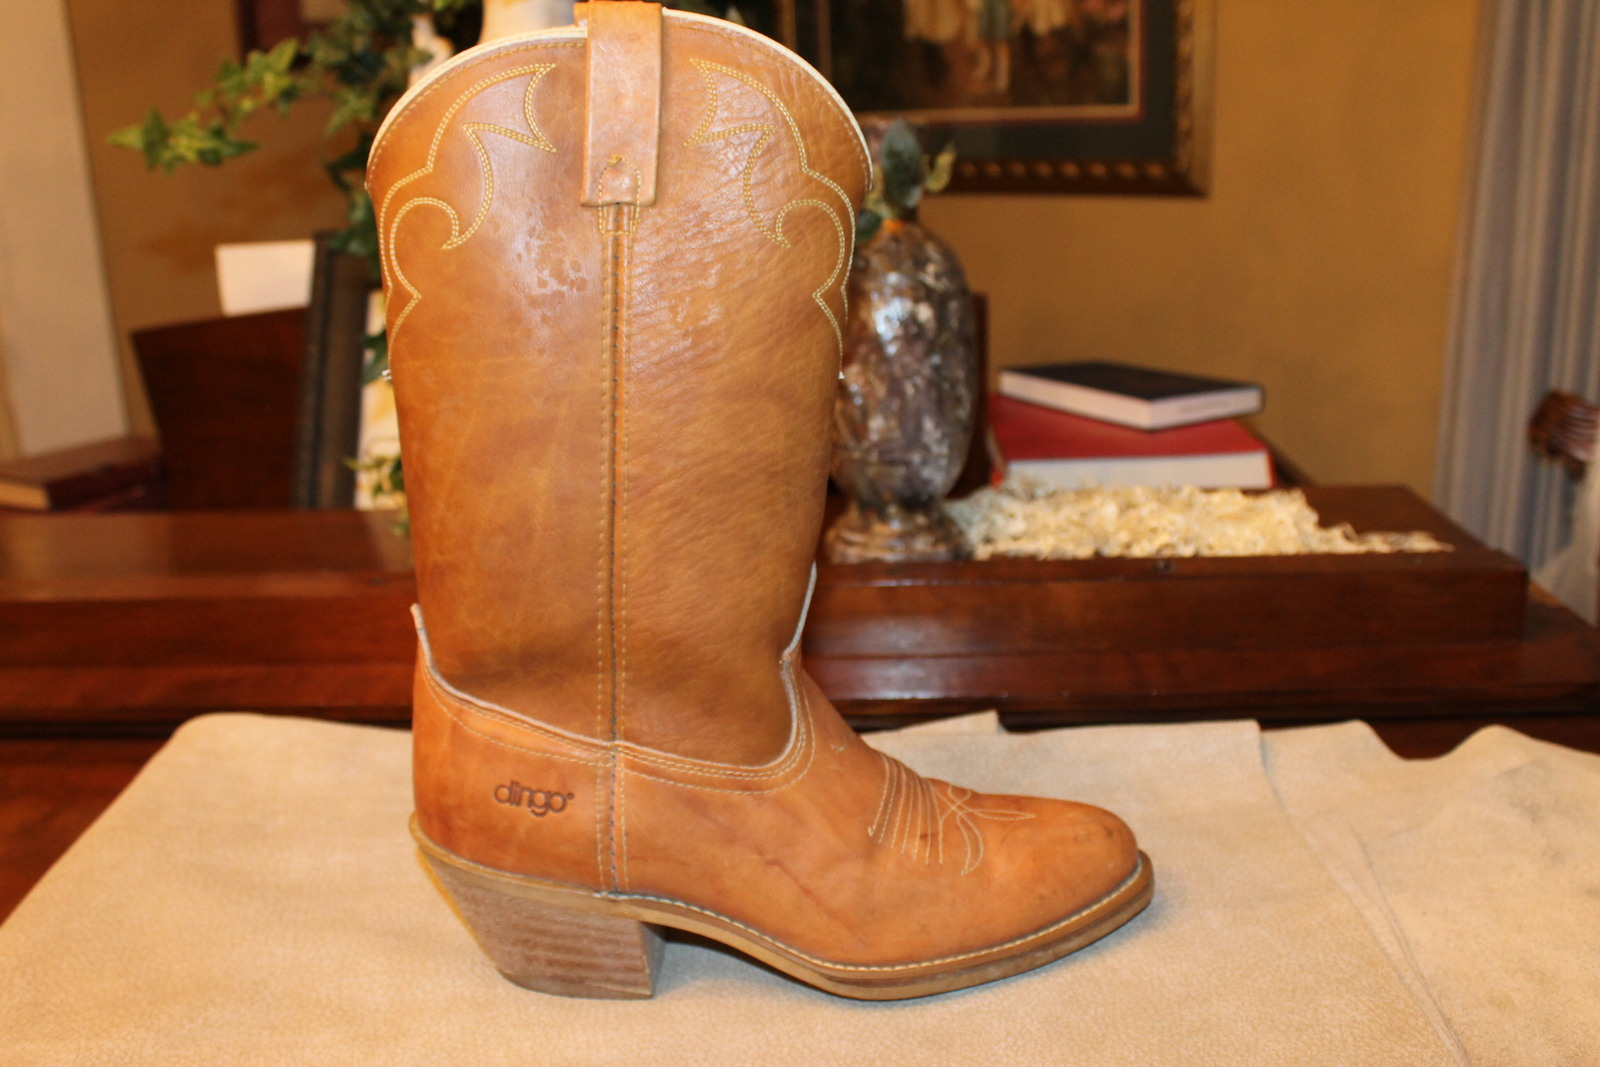 33cdb8254a9 Men's Western Vintage Acme Dingo Boots and 37 similar items